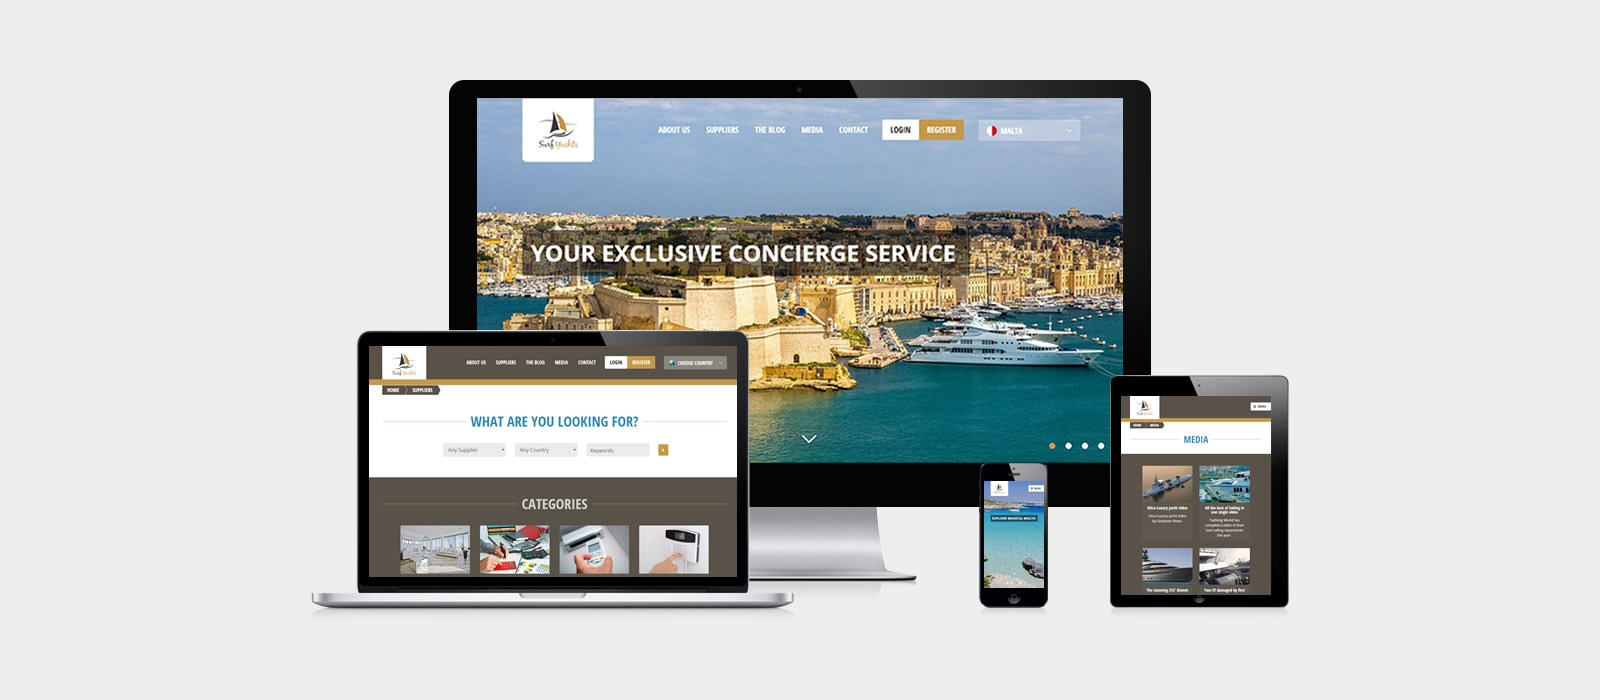 Surf Yachts - Web Design & Development / Web Hosting & Domain Names / E-Commerce